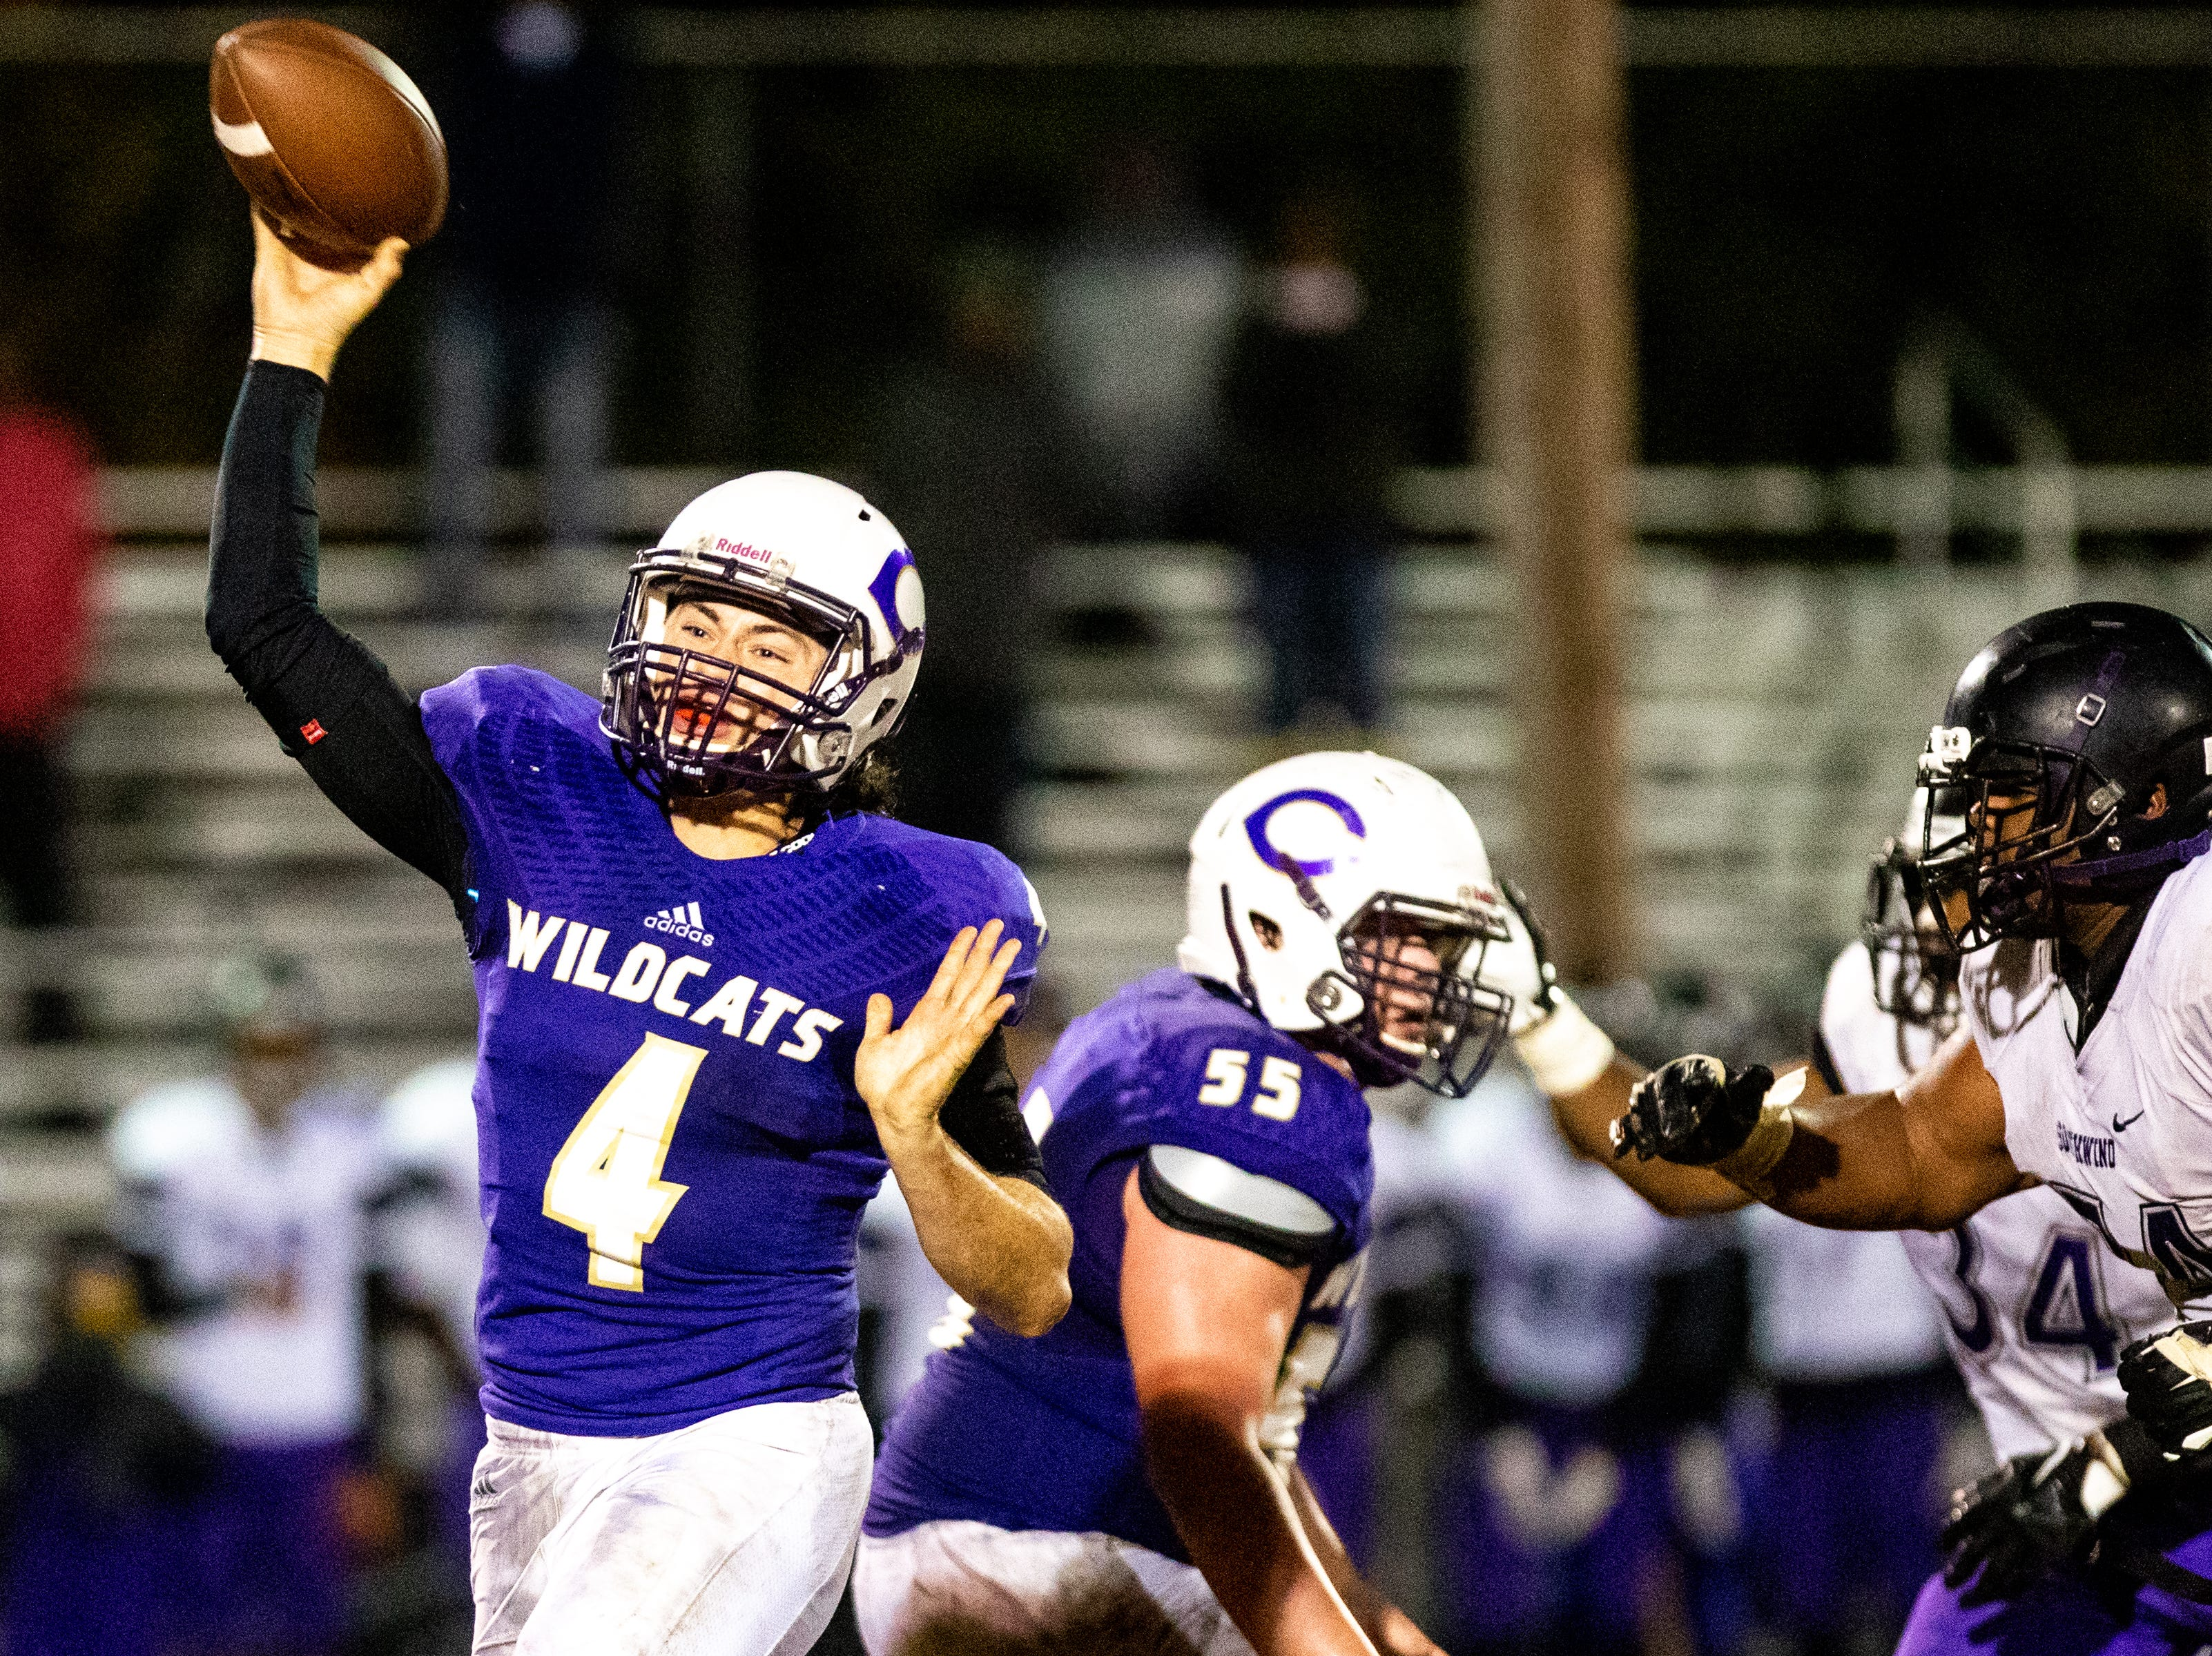 Ford Cooper (4) of Clarksville High throws the ball during the second half at Clarksville High Friday, Nov. 2, 2018, in Clarksville, Tenn.